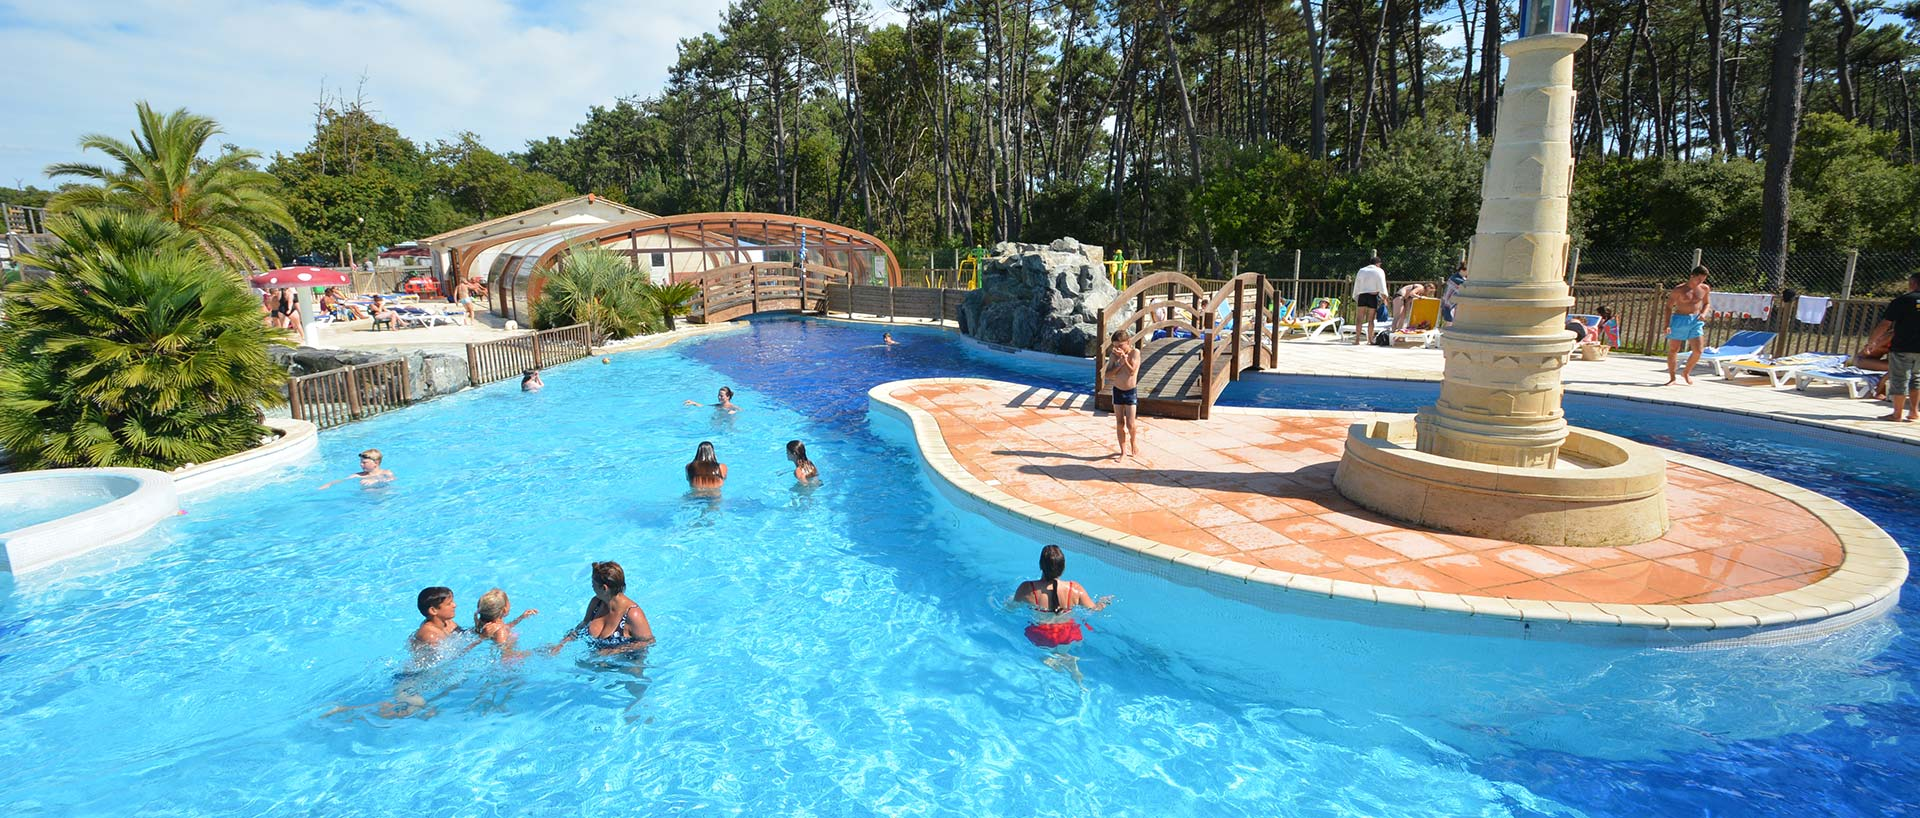 Vacance camping ete 2016